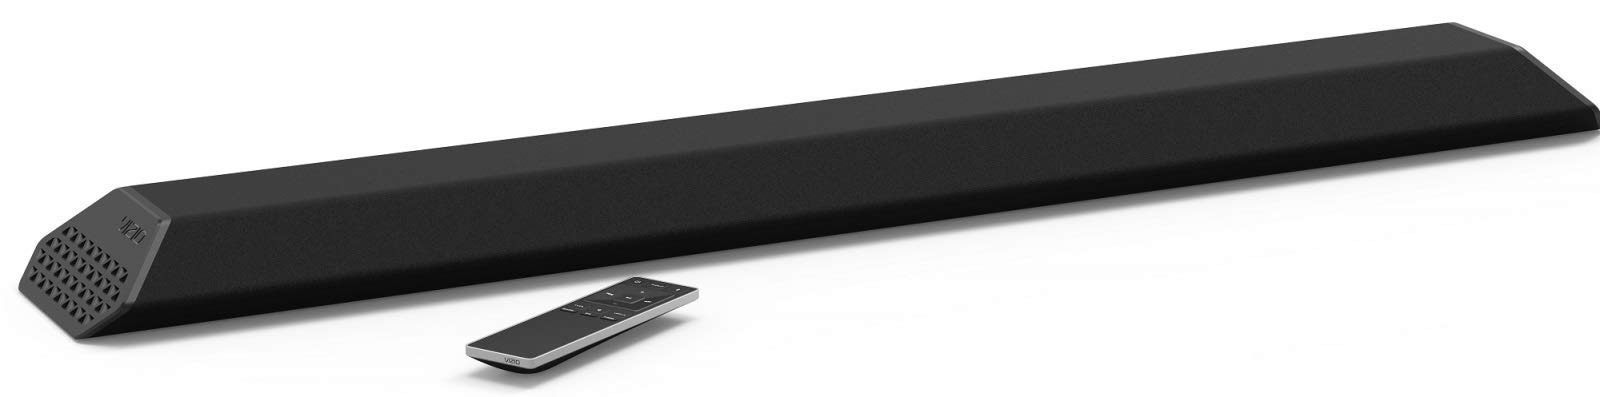 Vizio SB362An-F6 36'' 2.1 Channel Soundbar with Built-In Dual Subwoofers by VIZIO (Image #1)